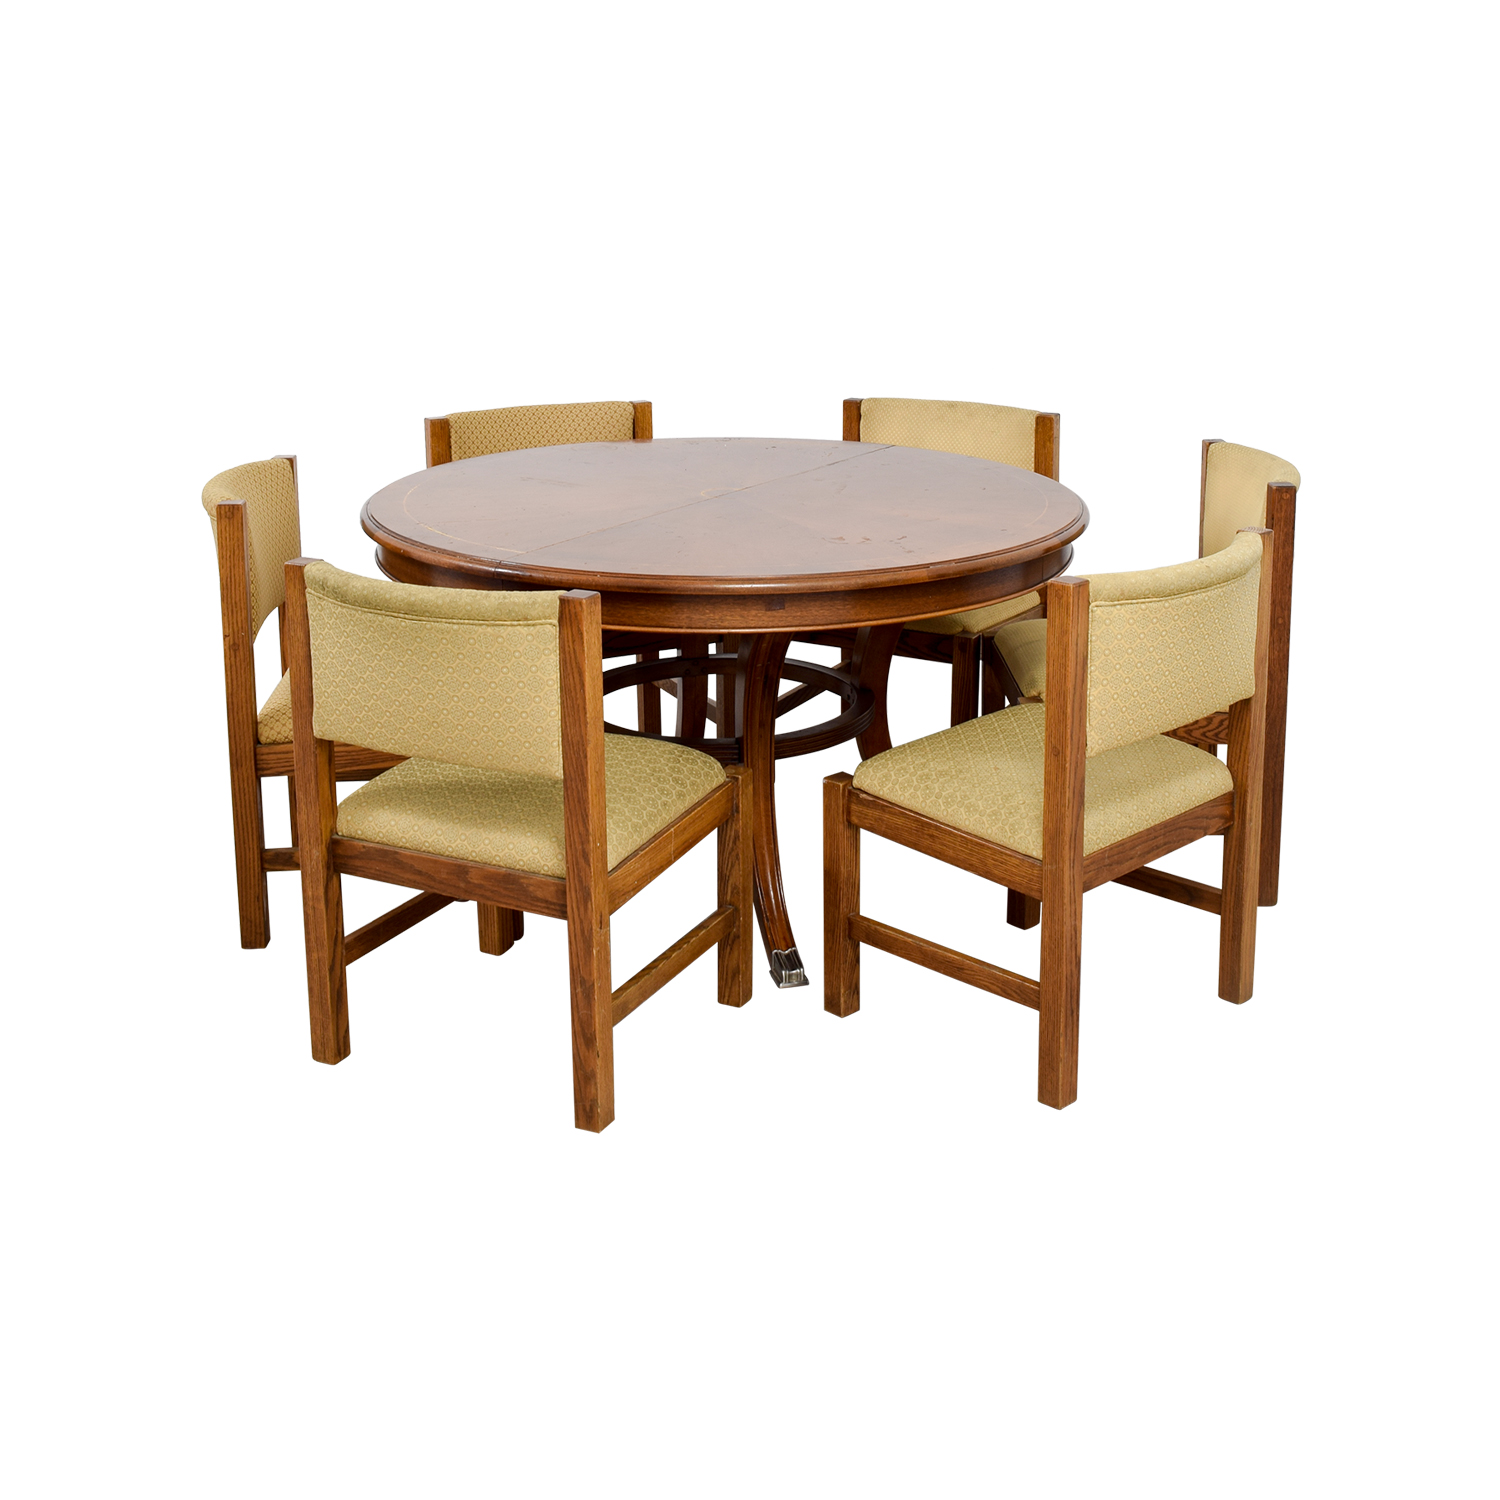 Pottery Barn Dining Sets: Pottery Barn Pottery Barn Yellow Dining Set / Tables